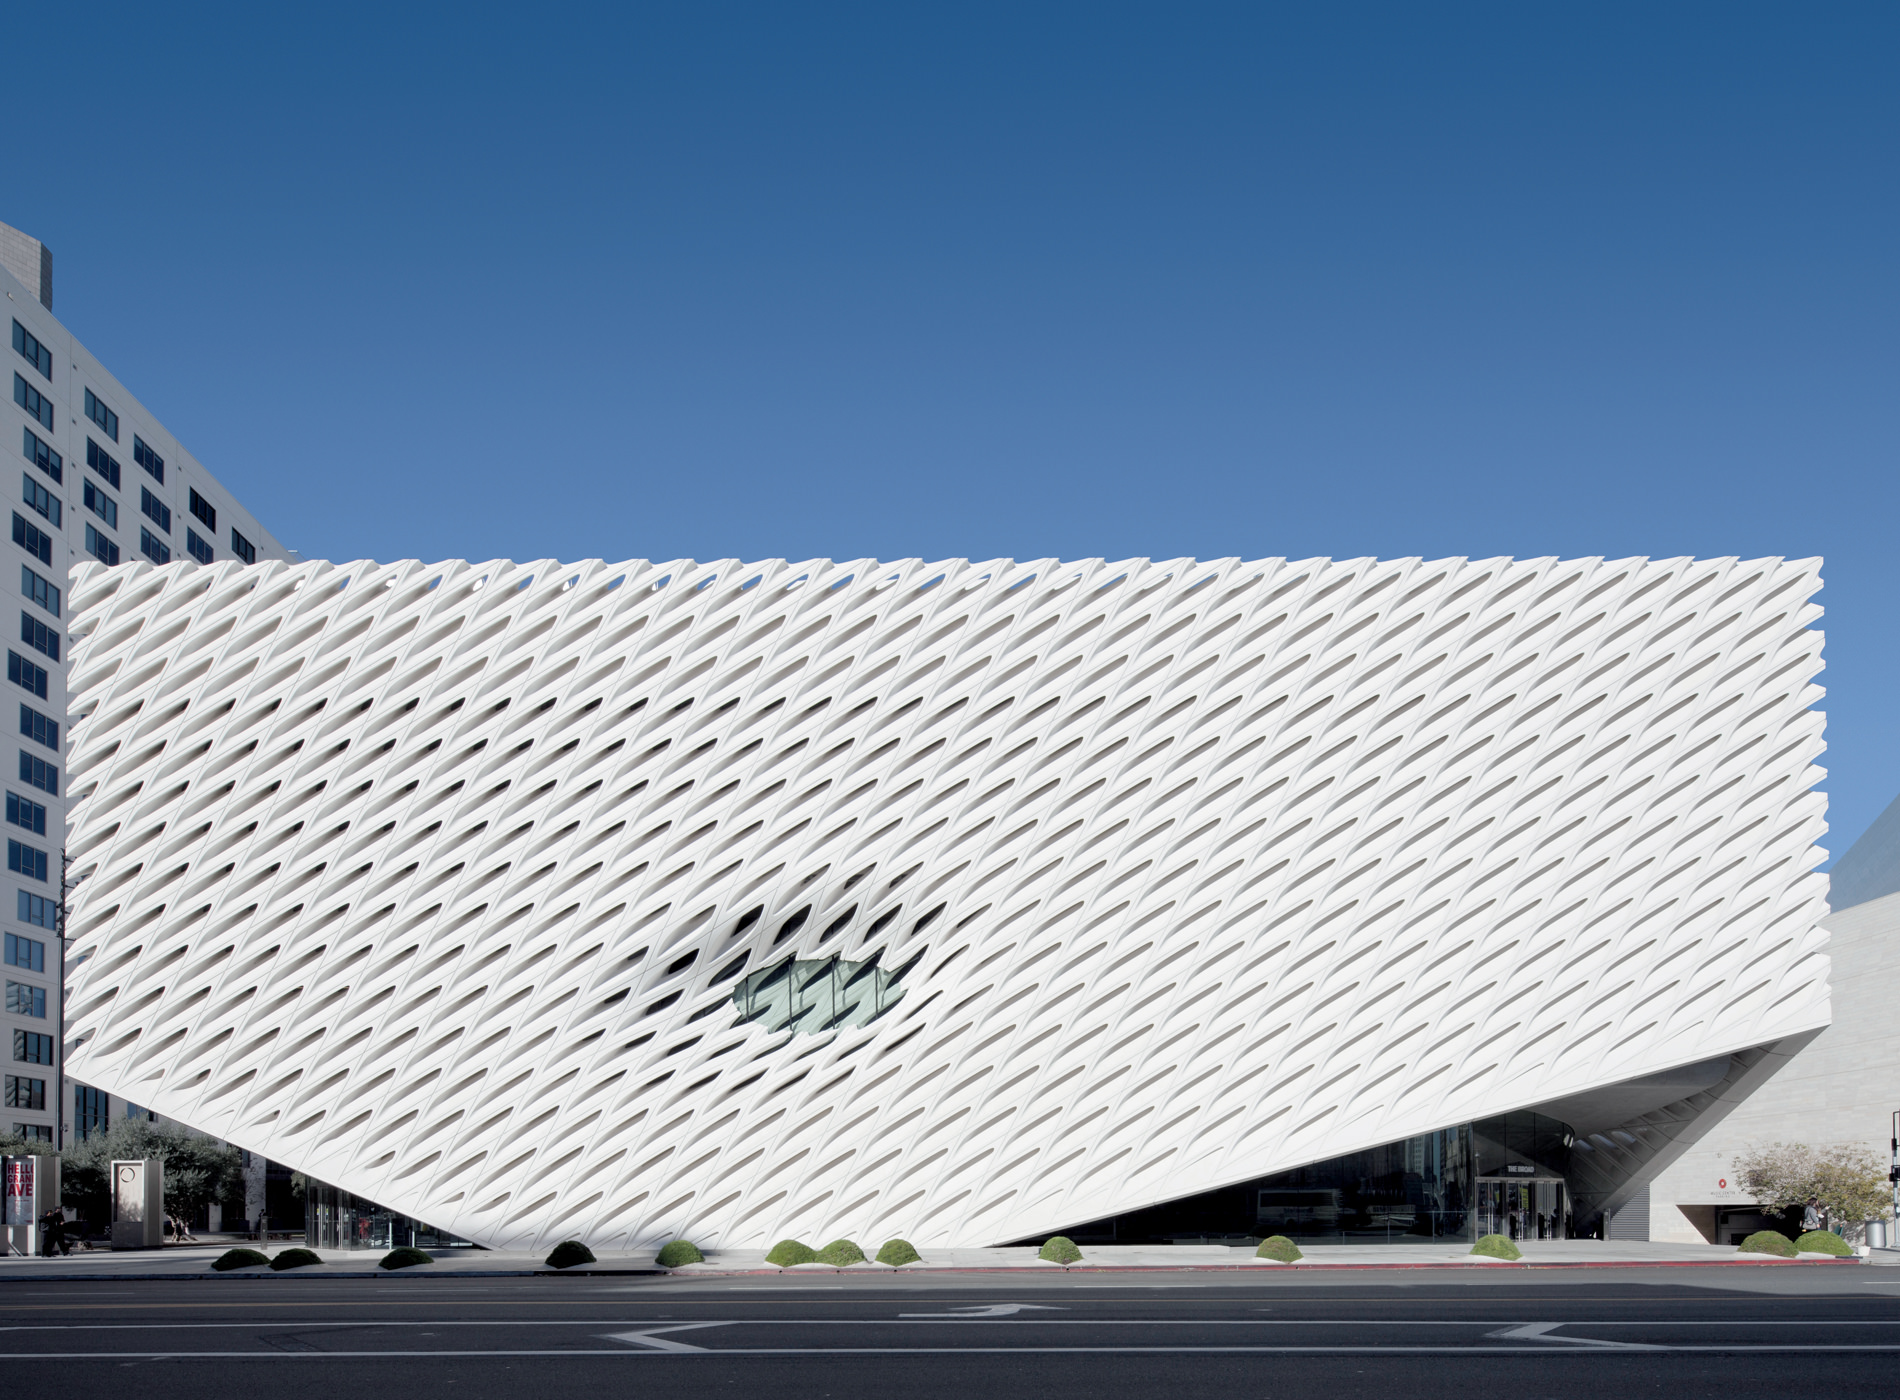 Phaidon Jane Hall, Liz Diller, The Broad, Los Angeles